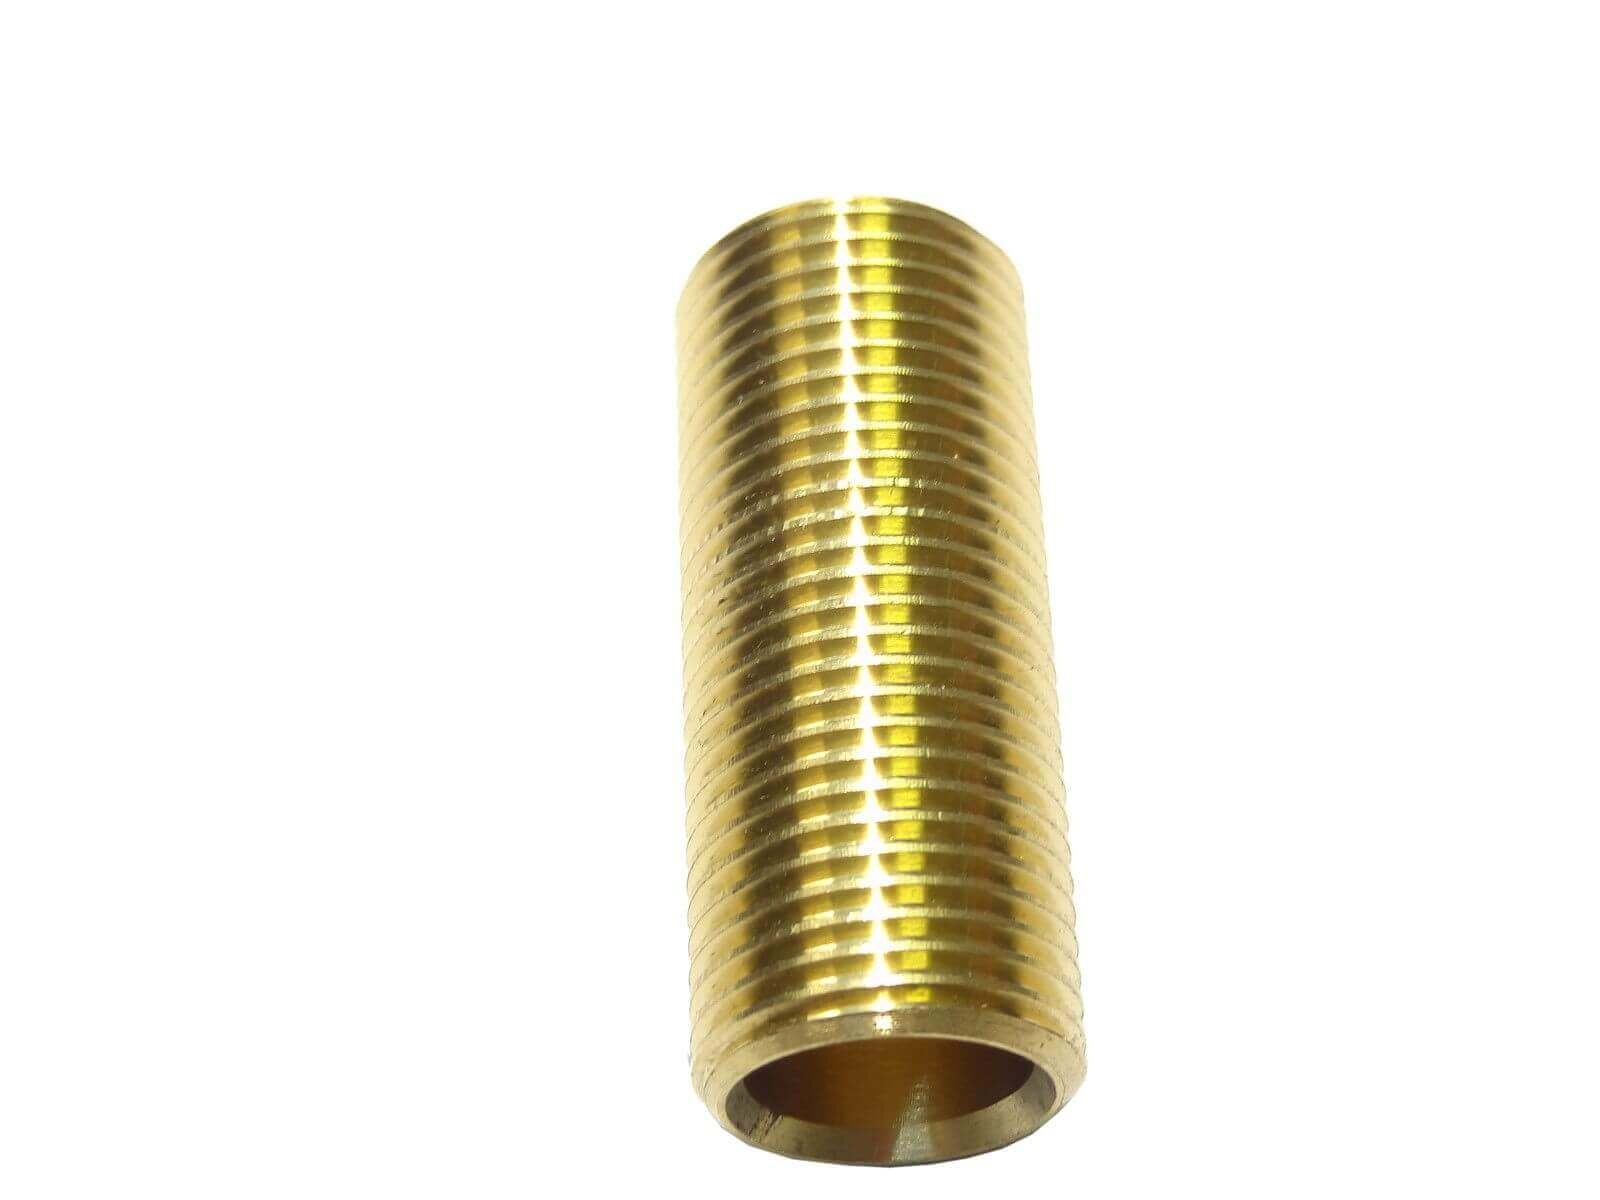 4 Brass Running Nipple BSP Threaded